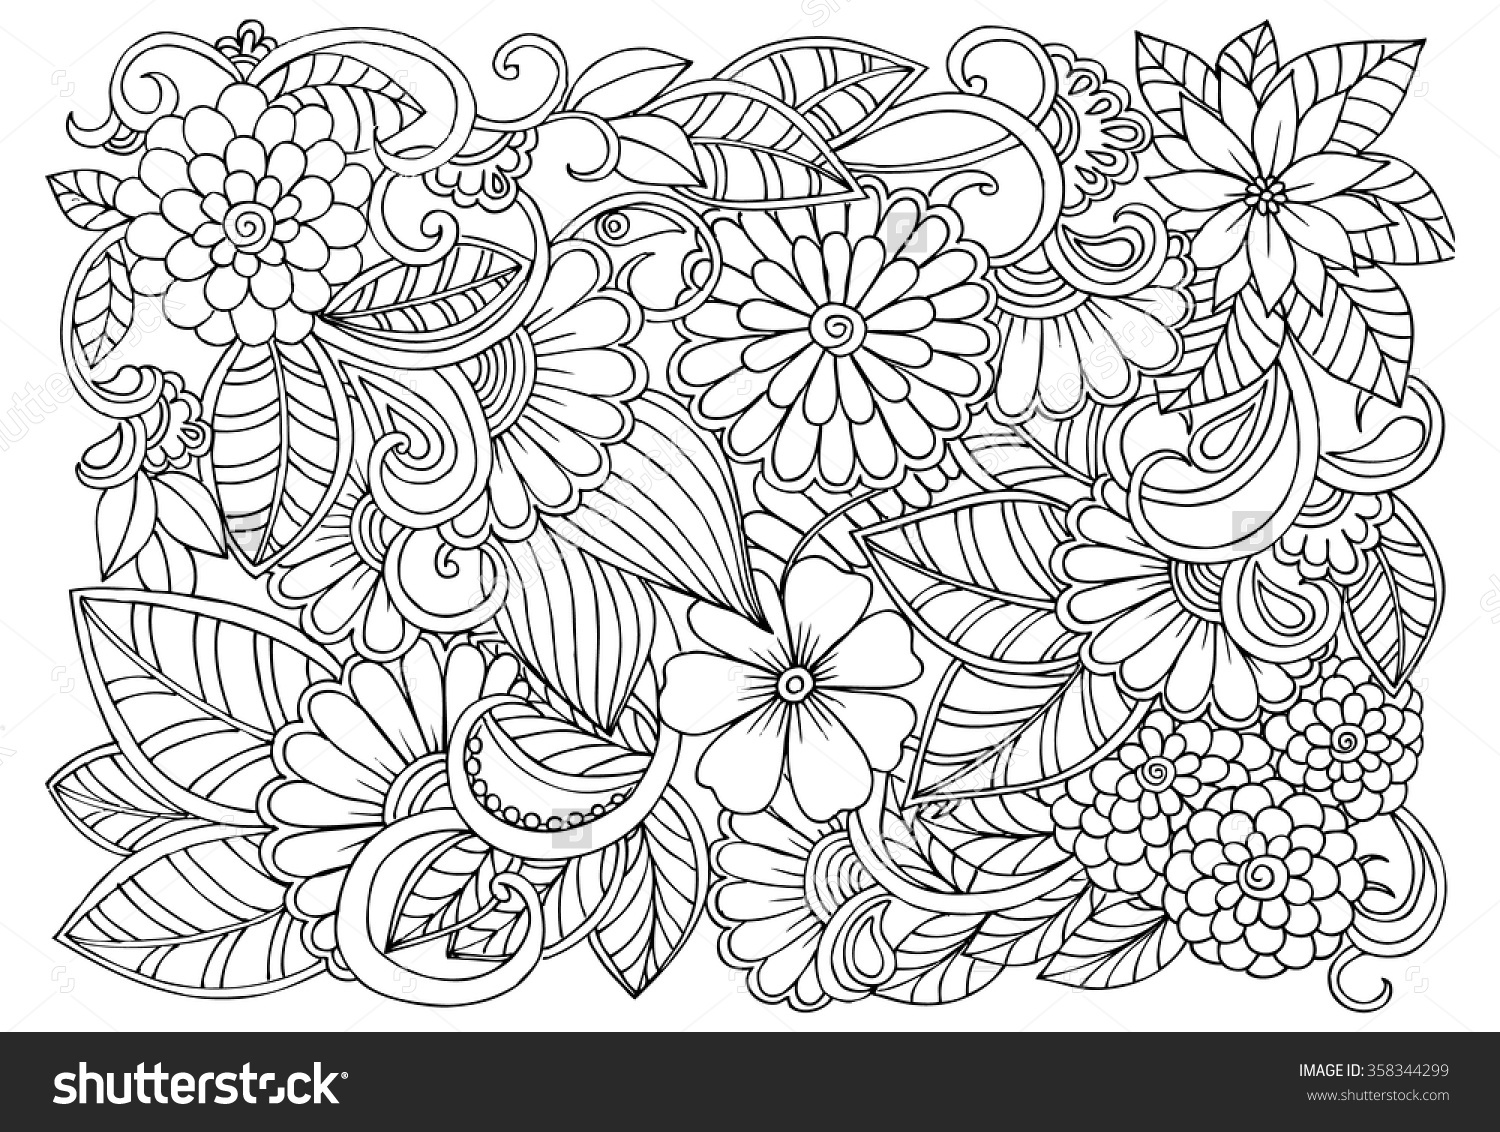 Flower Pattern Coloring Pages at GetDrawings.com | Free for personal ...